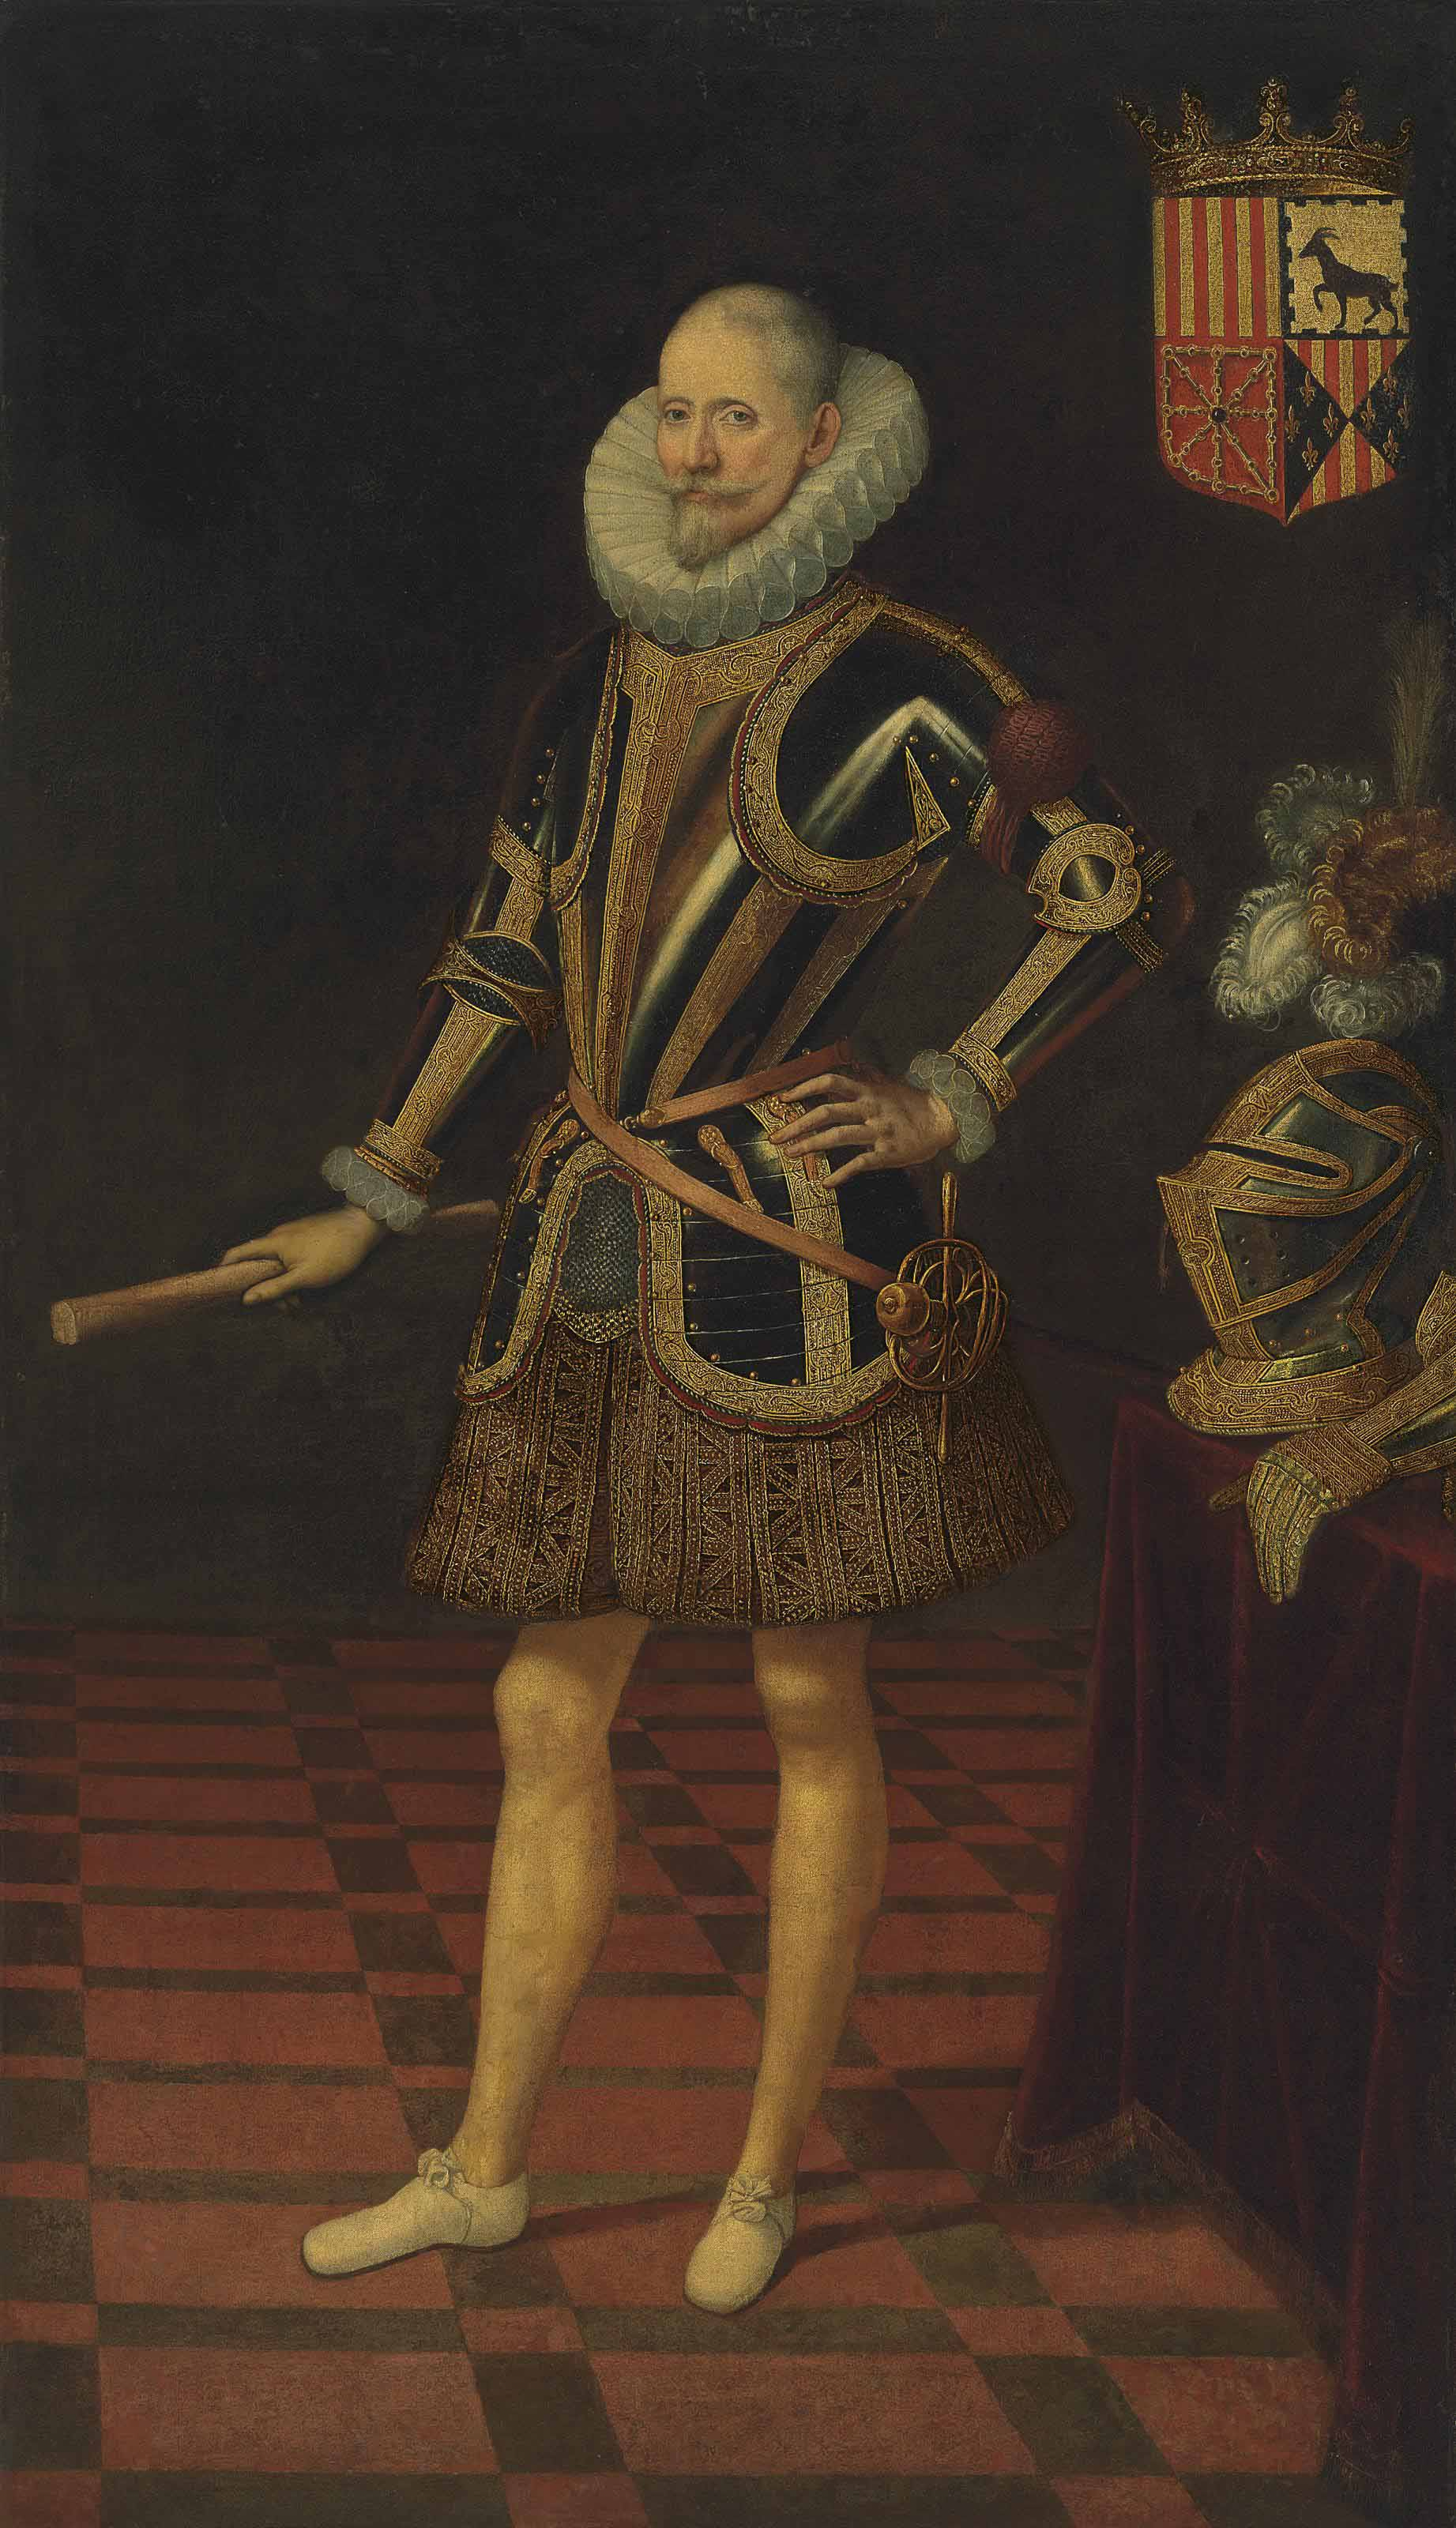 Portrait of a nobleman, probably Juan Francisco Cristobal Fernández de Híjar (c. 1550-1614), 4th Duke of Híjar, Duke of Aliaga and Lécera, Count of Belchite, full-length, in armour and embroidered trunk hose, holding a baton of command in his right hand, his plumed helmet and gauntlet resting on a draped table